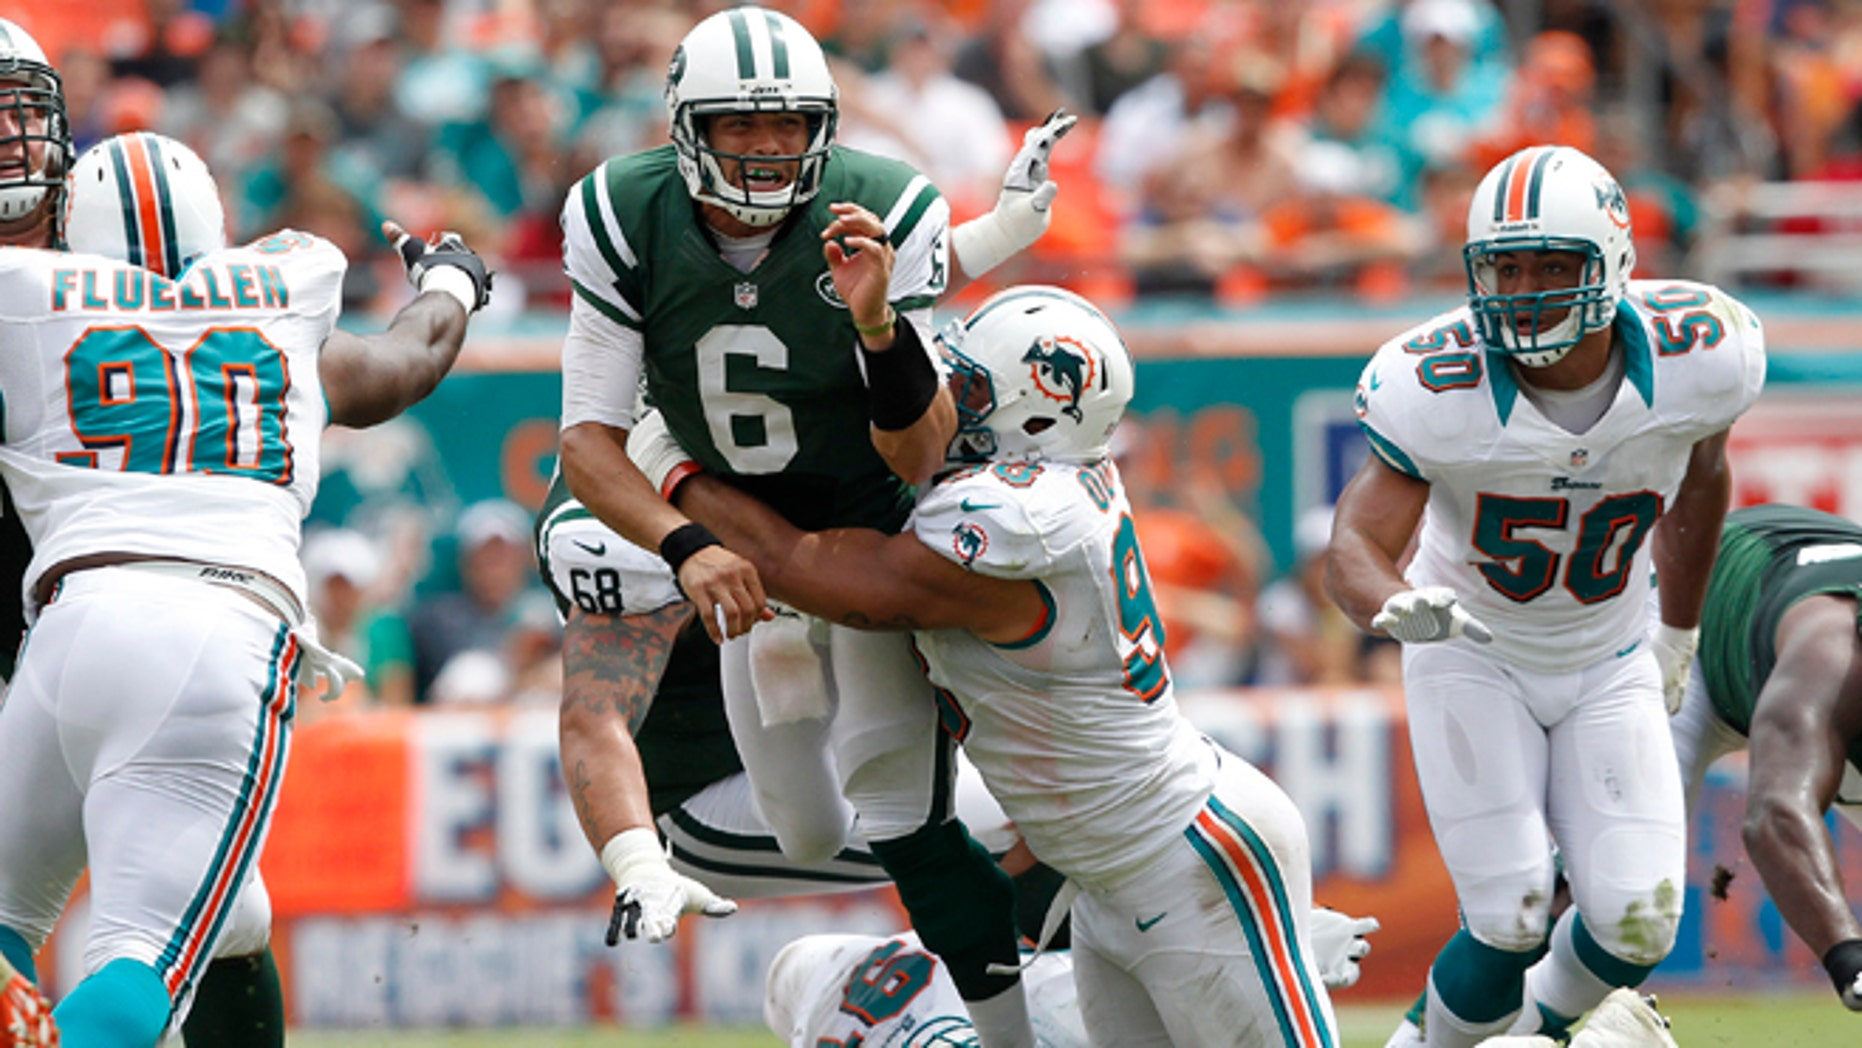 MIAMI GARDENS, FL - SEPTEMBER 23: Jared Odrick #98 of the Miami Dolphins hits Mark Sanchez #6 of the New York Jets as he gets the ball away on September 23, 2012 at Sun Life Stadium in Miami Gardens, Florida. (Photo by Joel Auerbach/Getty Images)